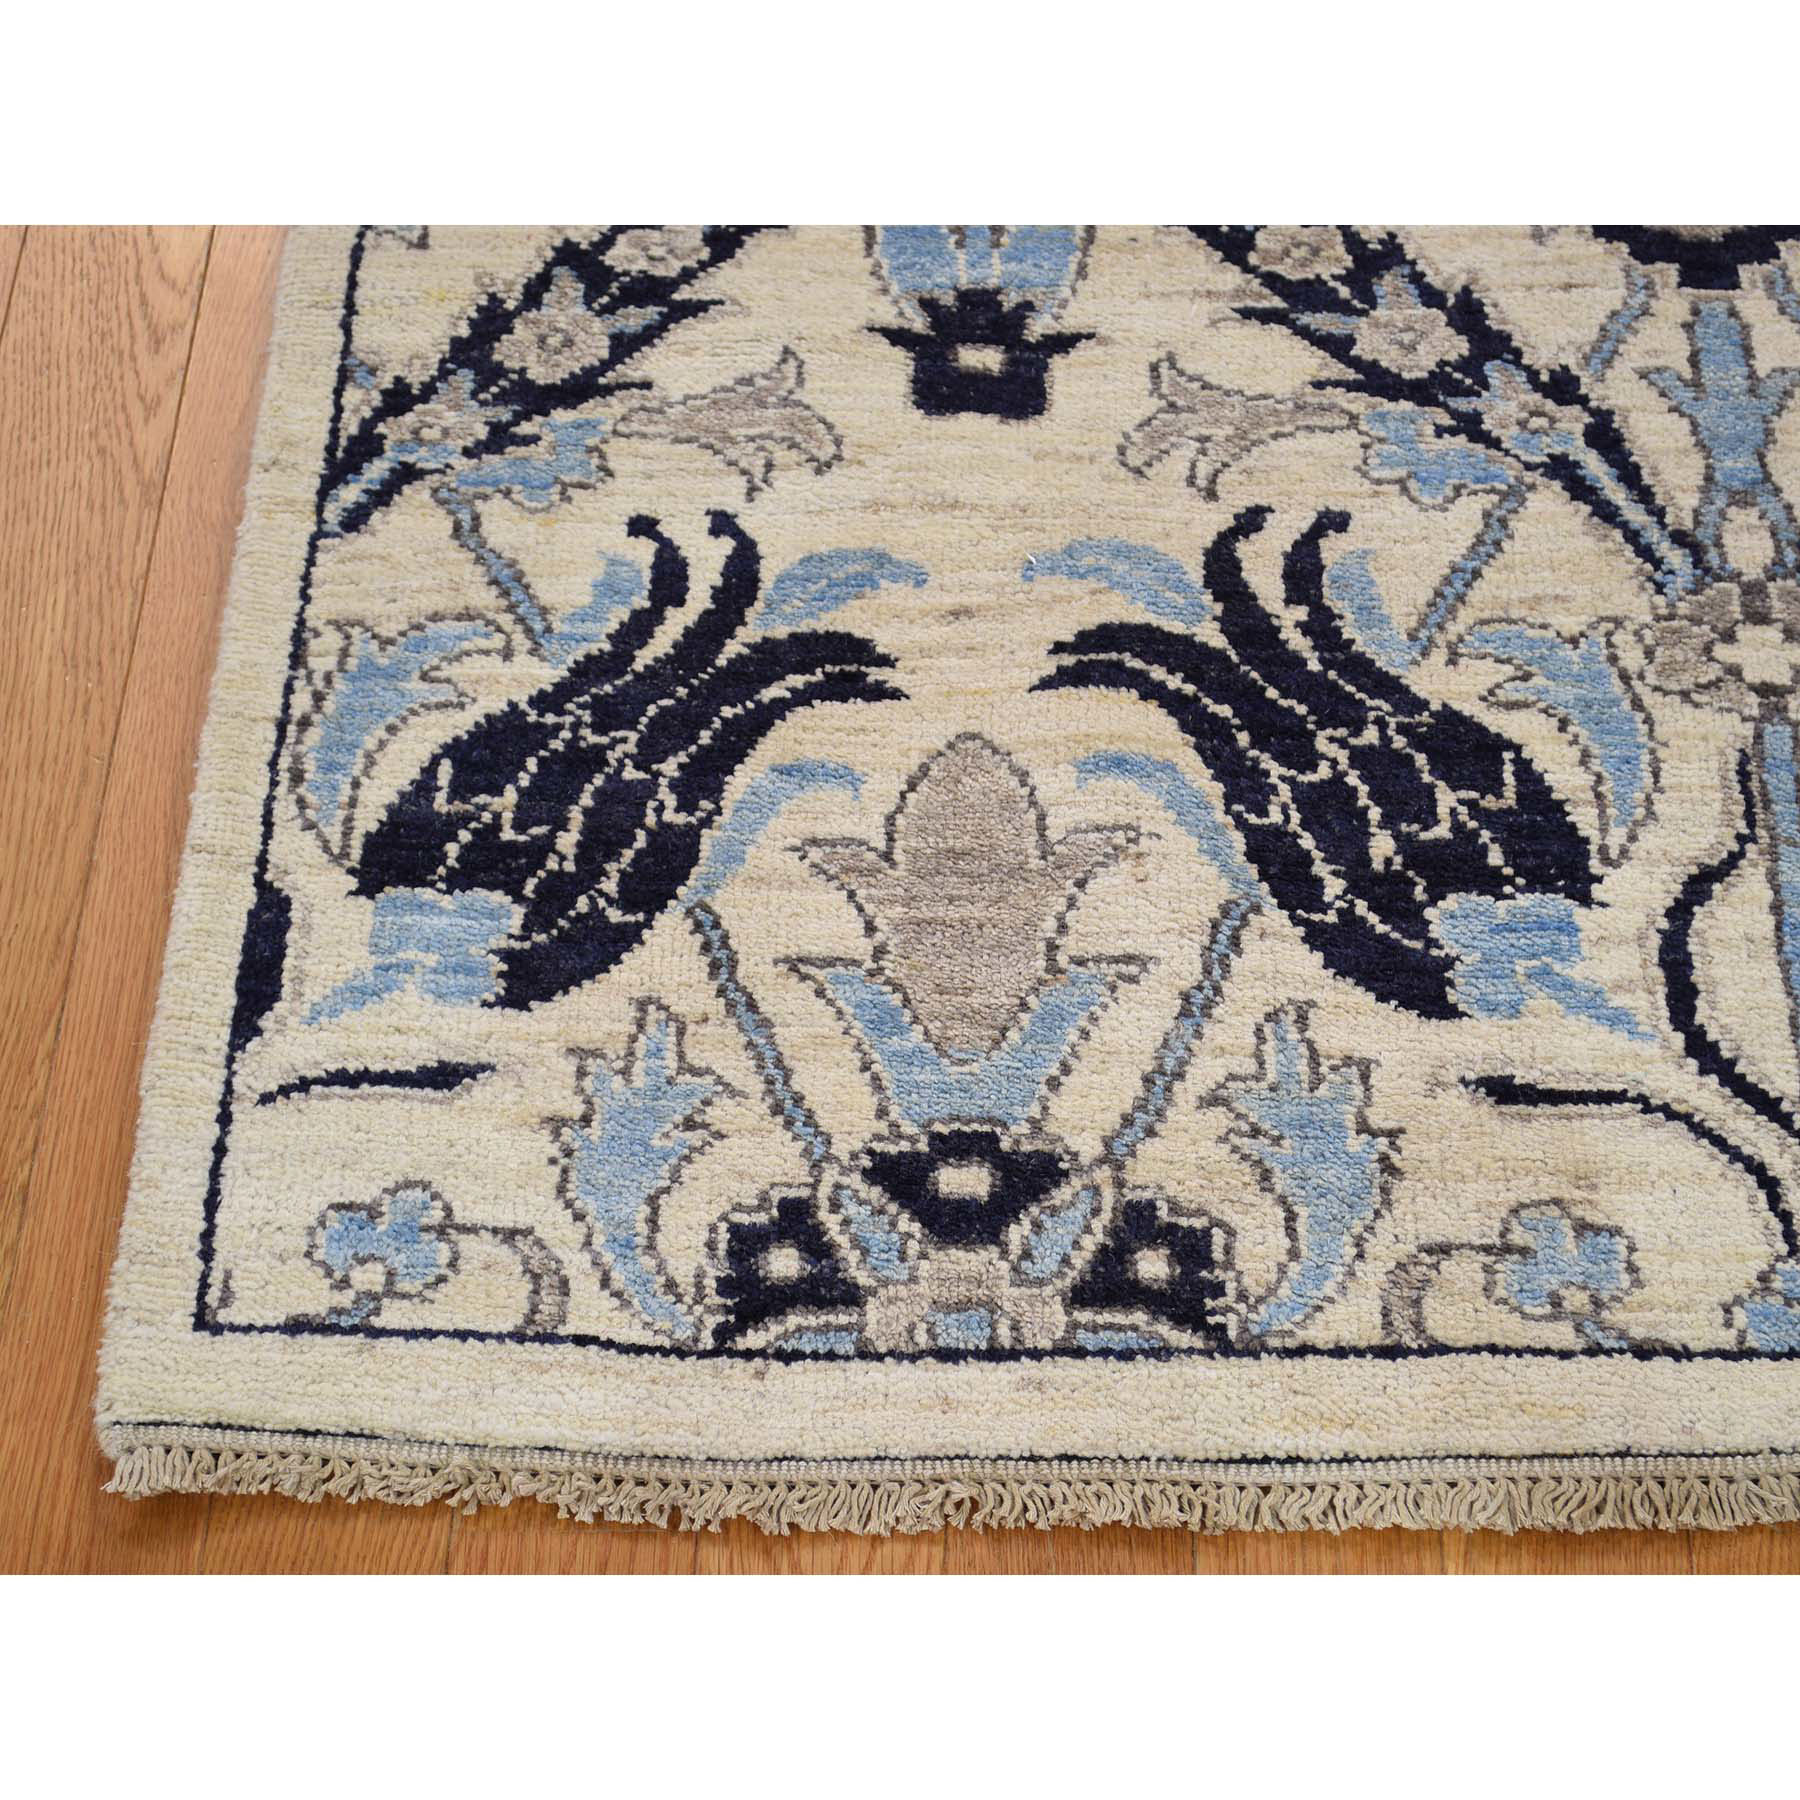 5-x7- Hand-Knotted Pure Wool Arts and Crafts Design Peshawar Oriental Rug